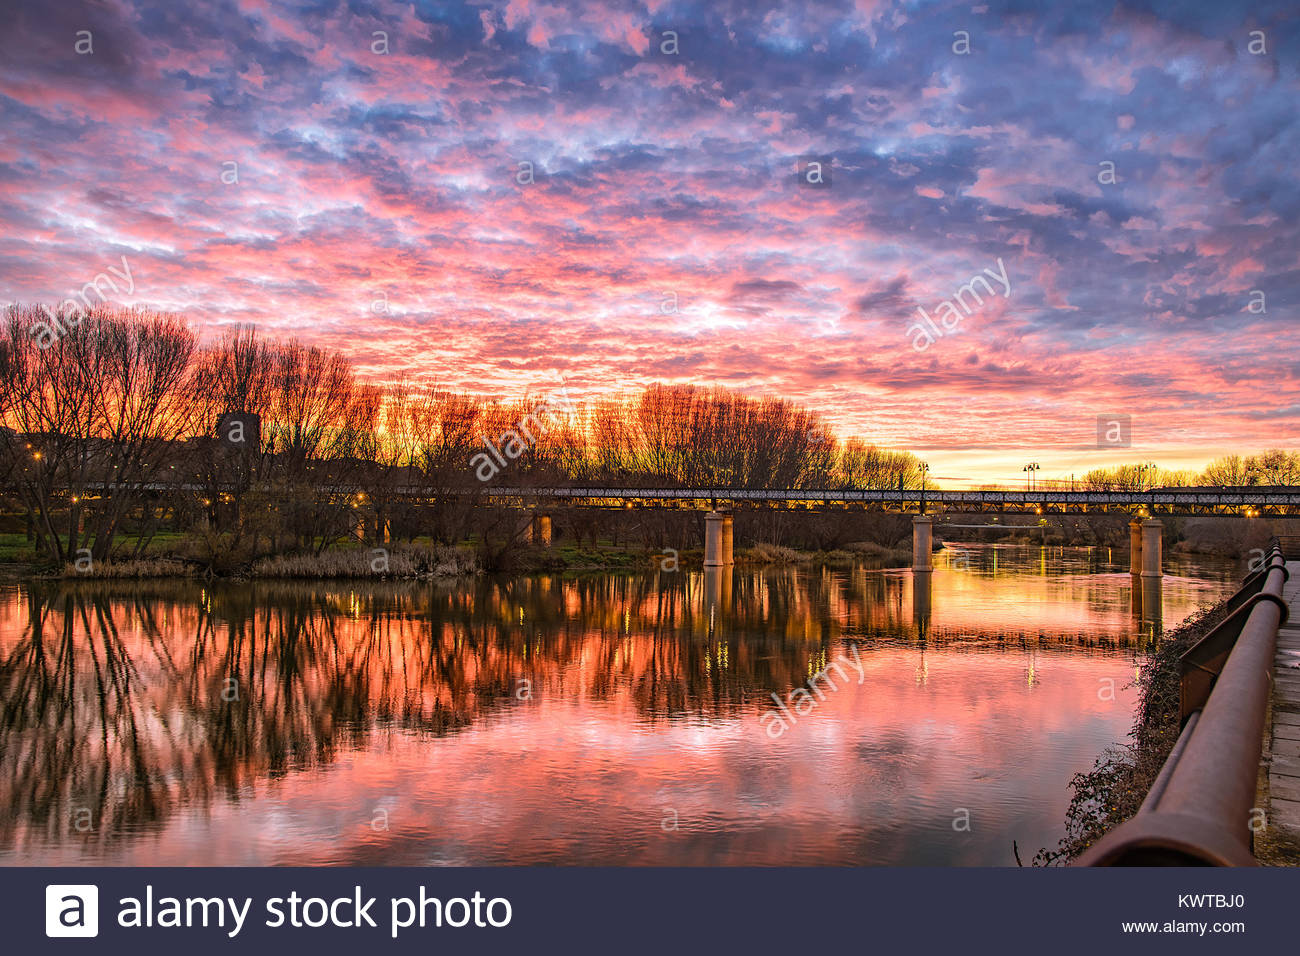 Magical sunset with magenta tones and beautiful reflections over river and over a iron bridge. - Stock Image